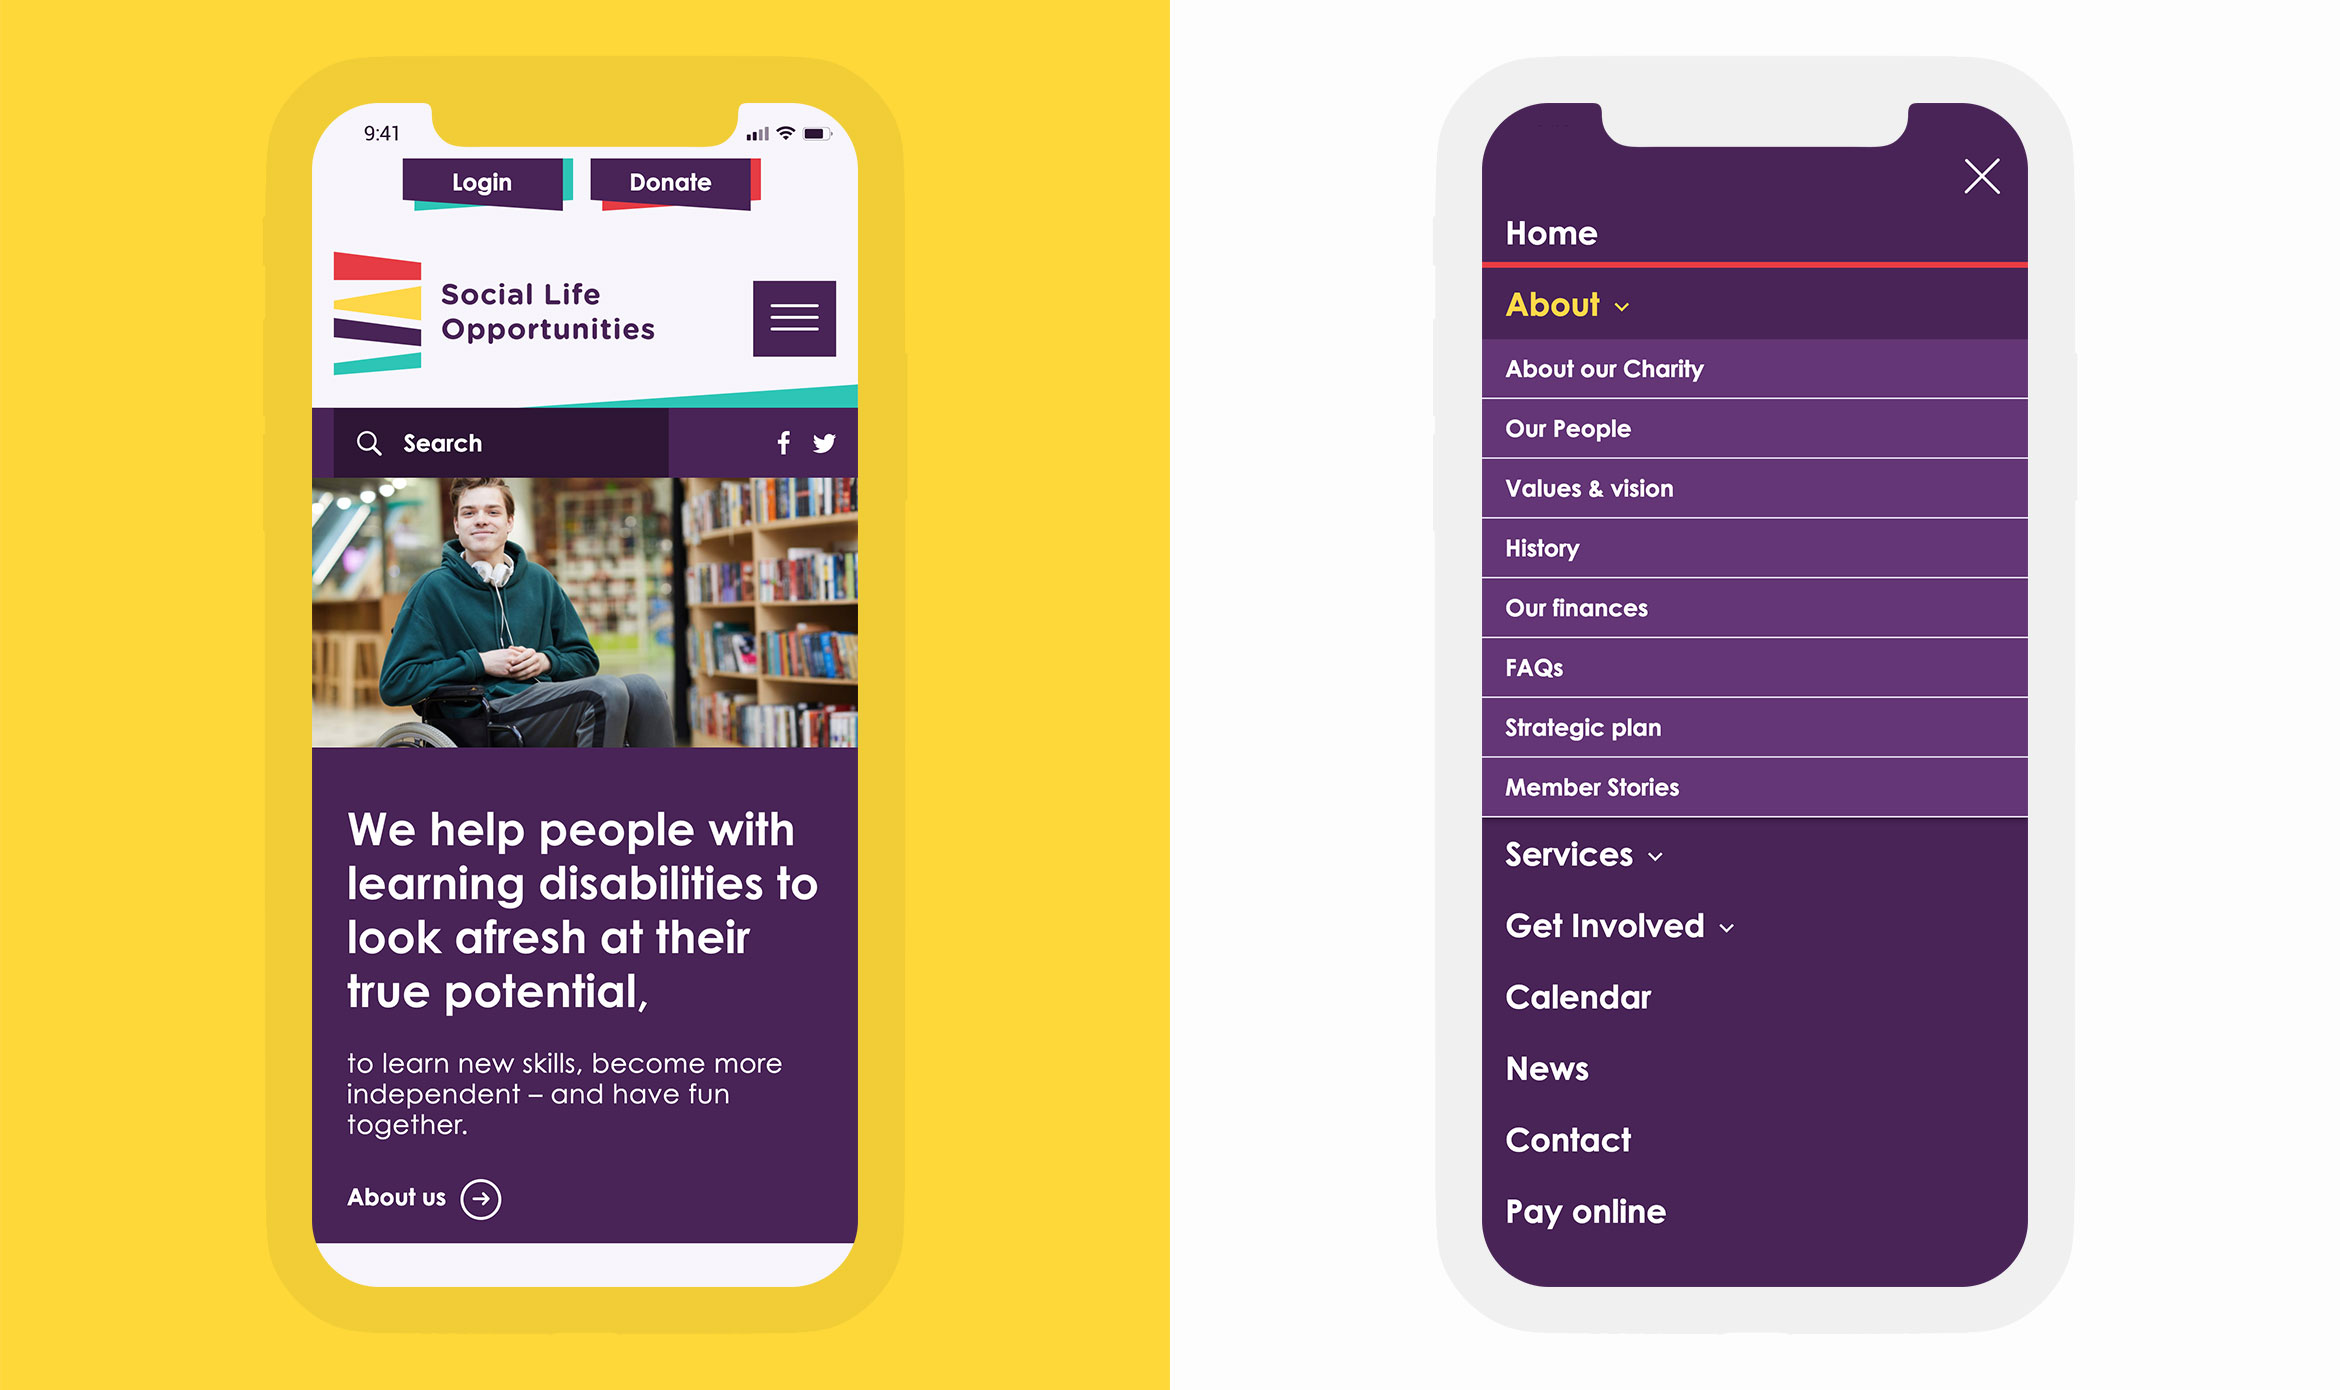 Website design for Social Life Opportunities using accessibility friendly font and navigation designed from the users' perspective.